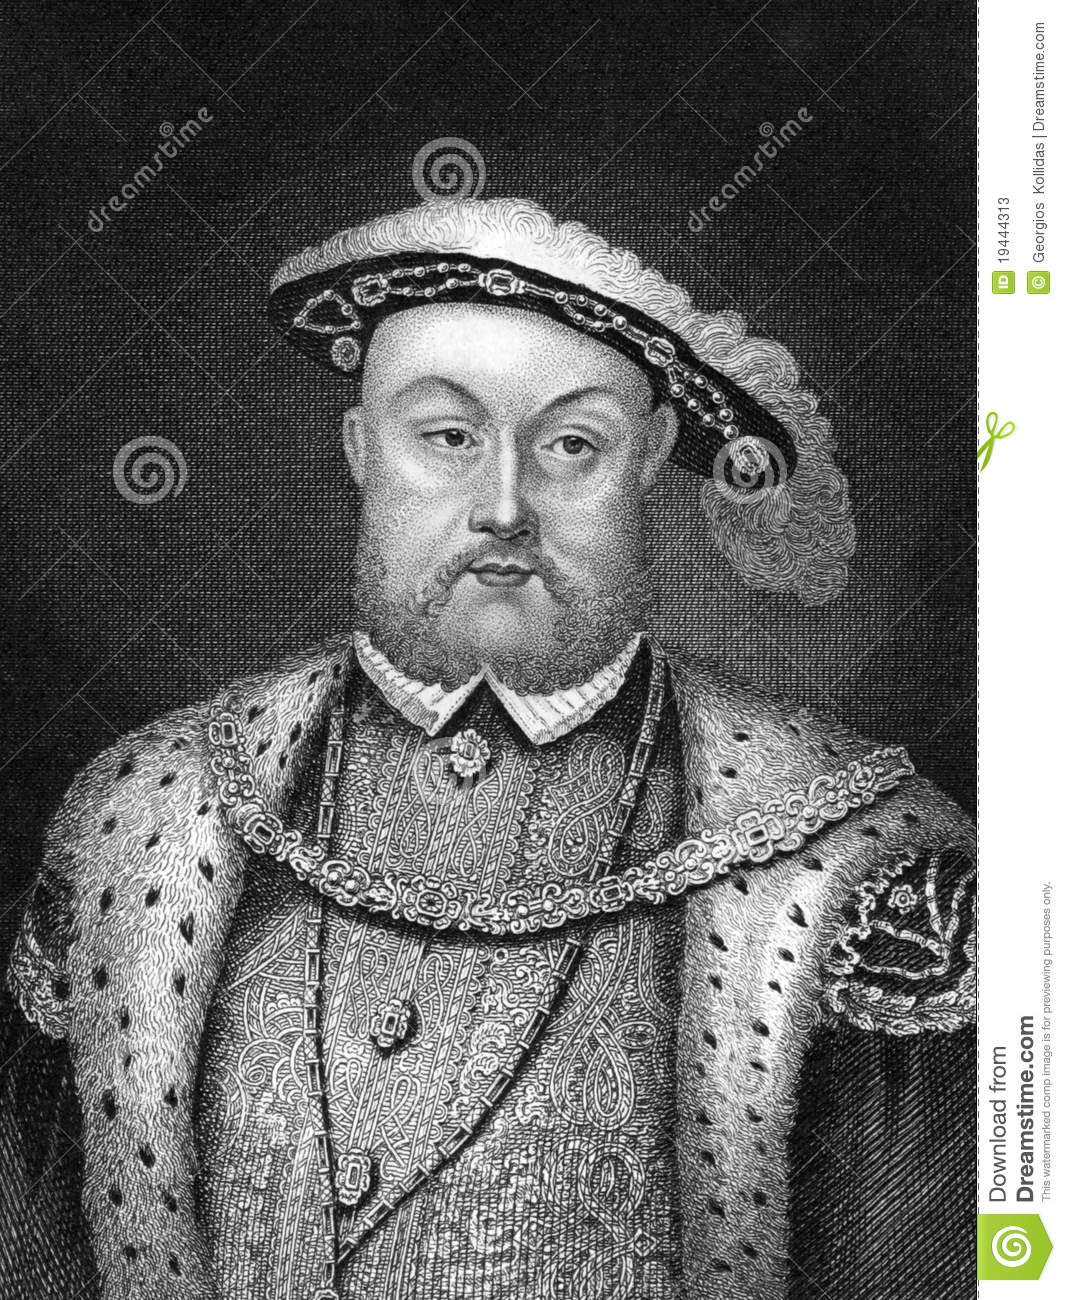 henry viii king of england King henry viii of england and ireland, the third child and second son of henry vii and elizabeth of york, was born on the 28th of june 1491 and, like all the tudor monarchs except henry vii, at greenwich palace.